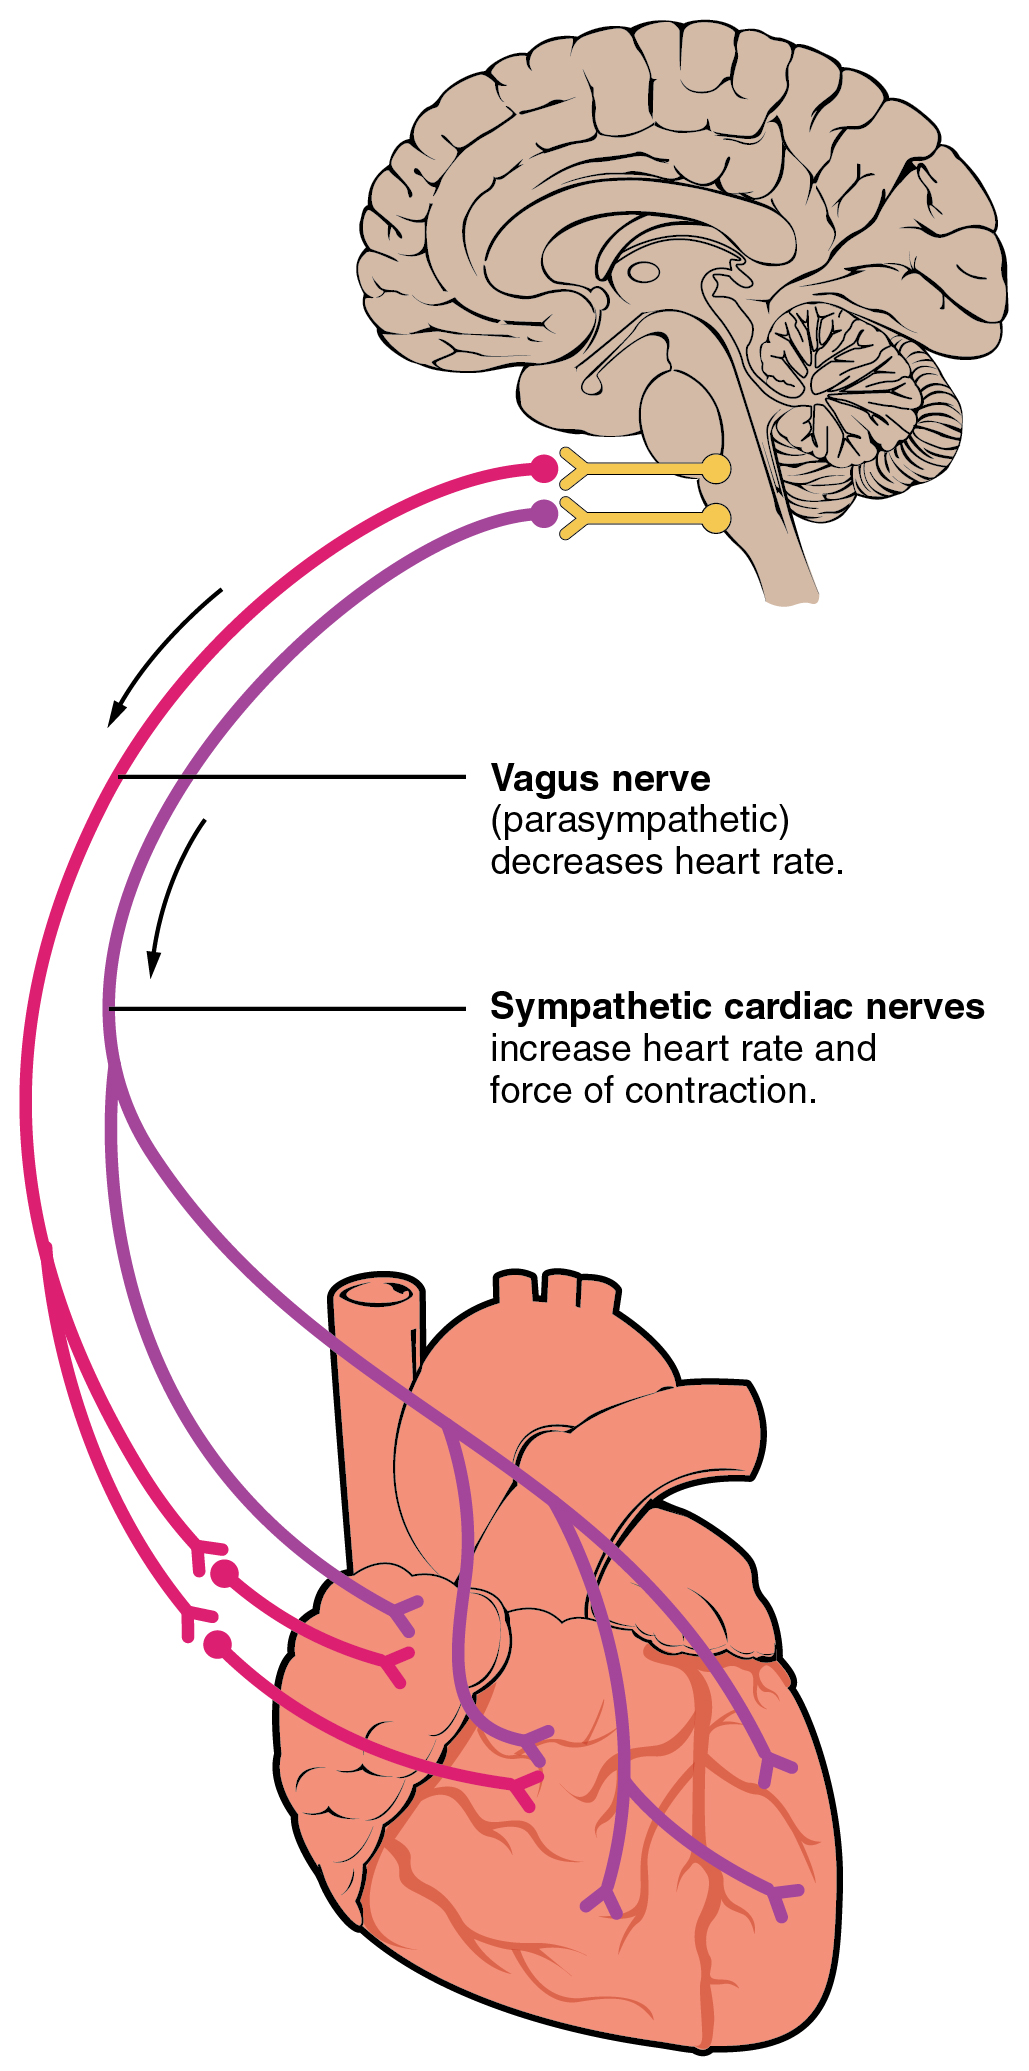 This figure shows the brain and the nerves connecting the brain to the heart.